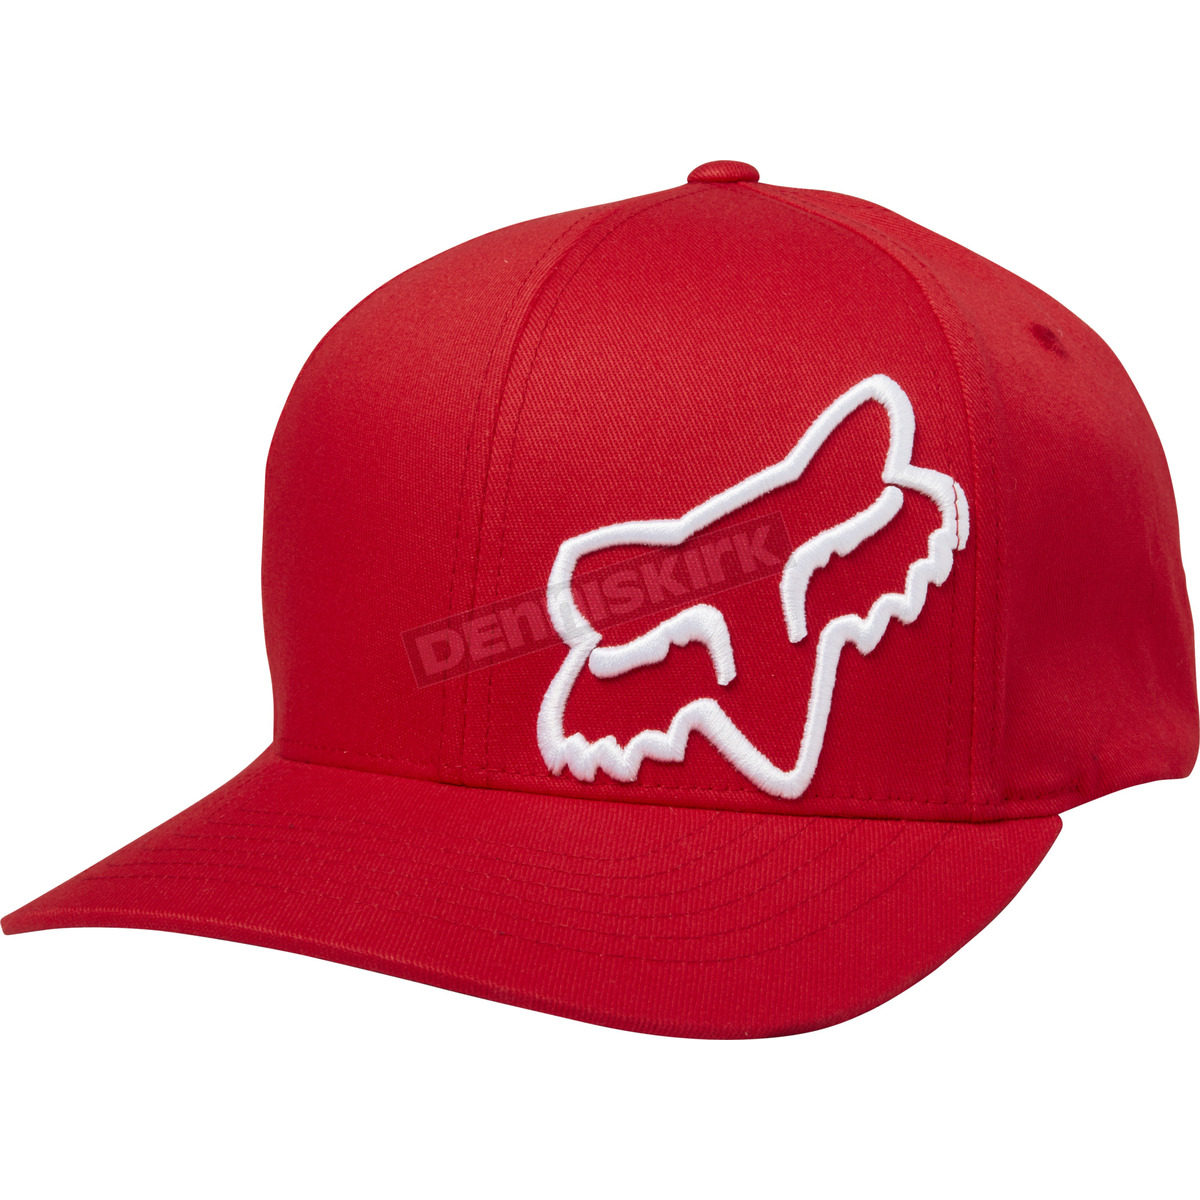 970285df4592a Fox Dark Red Flex 45 FlexFit Hat - 58379-208-S M Dirt Bike ...